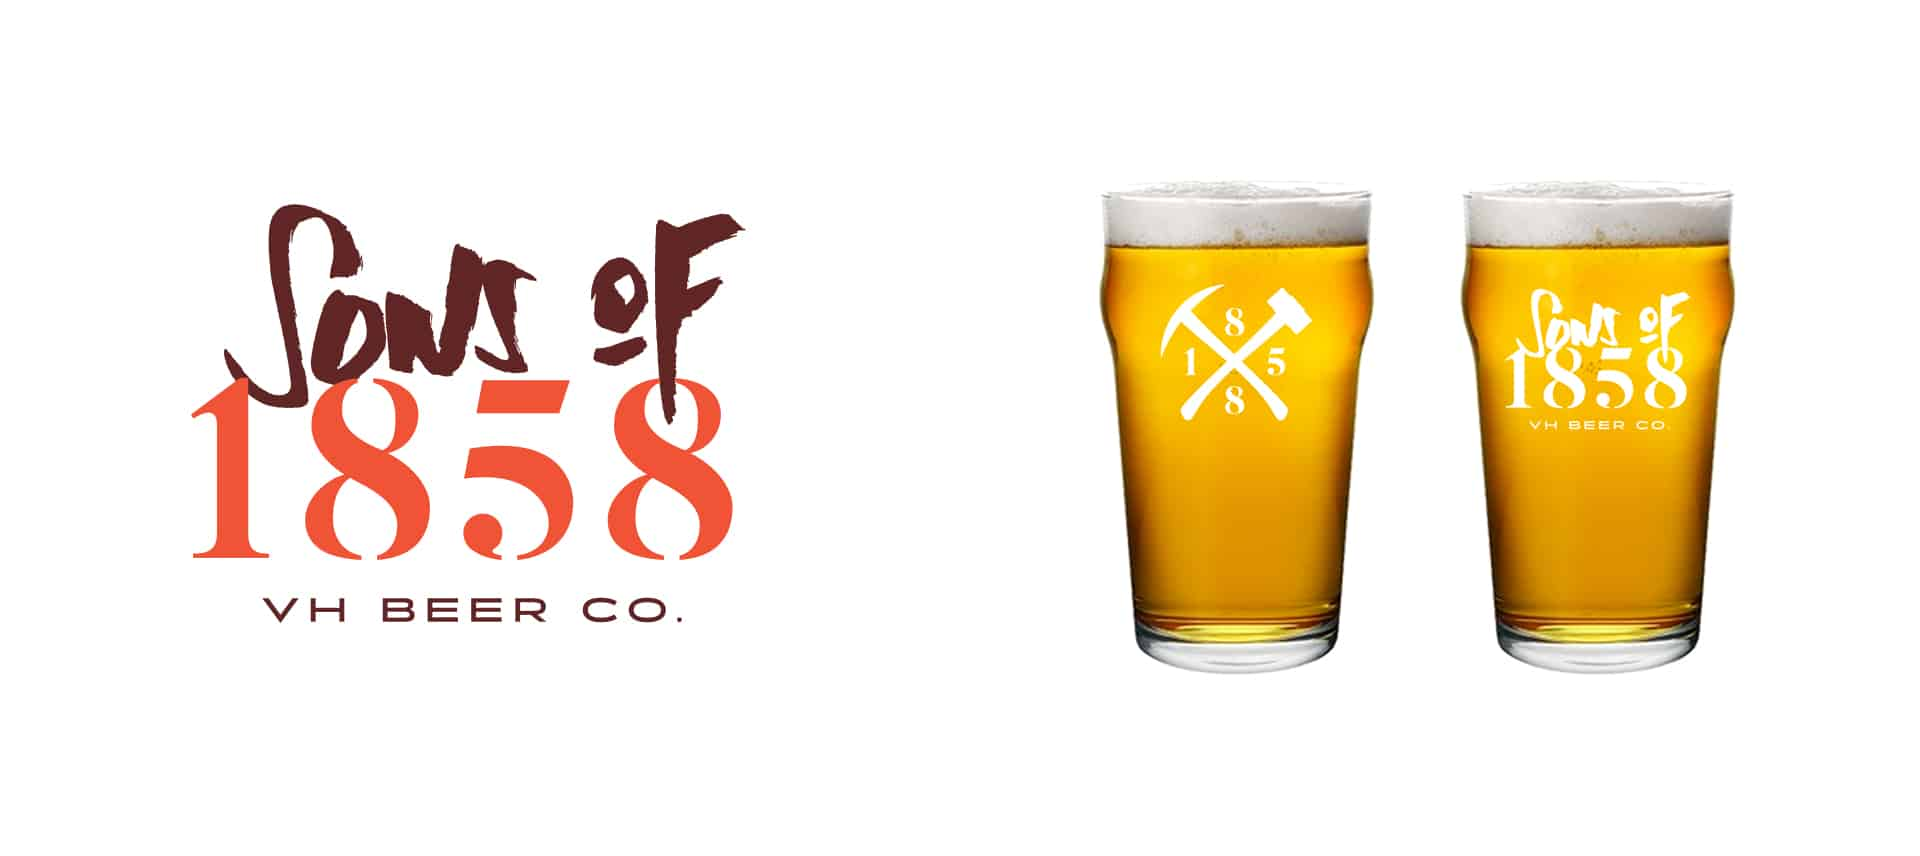 Sons of 1858 craft beer branding and marketing design